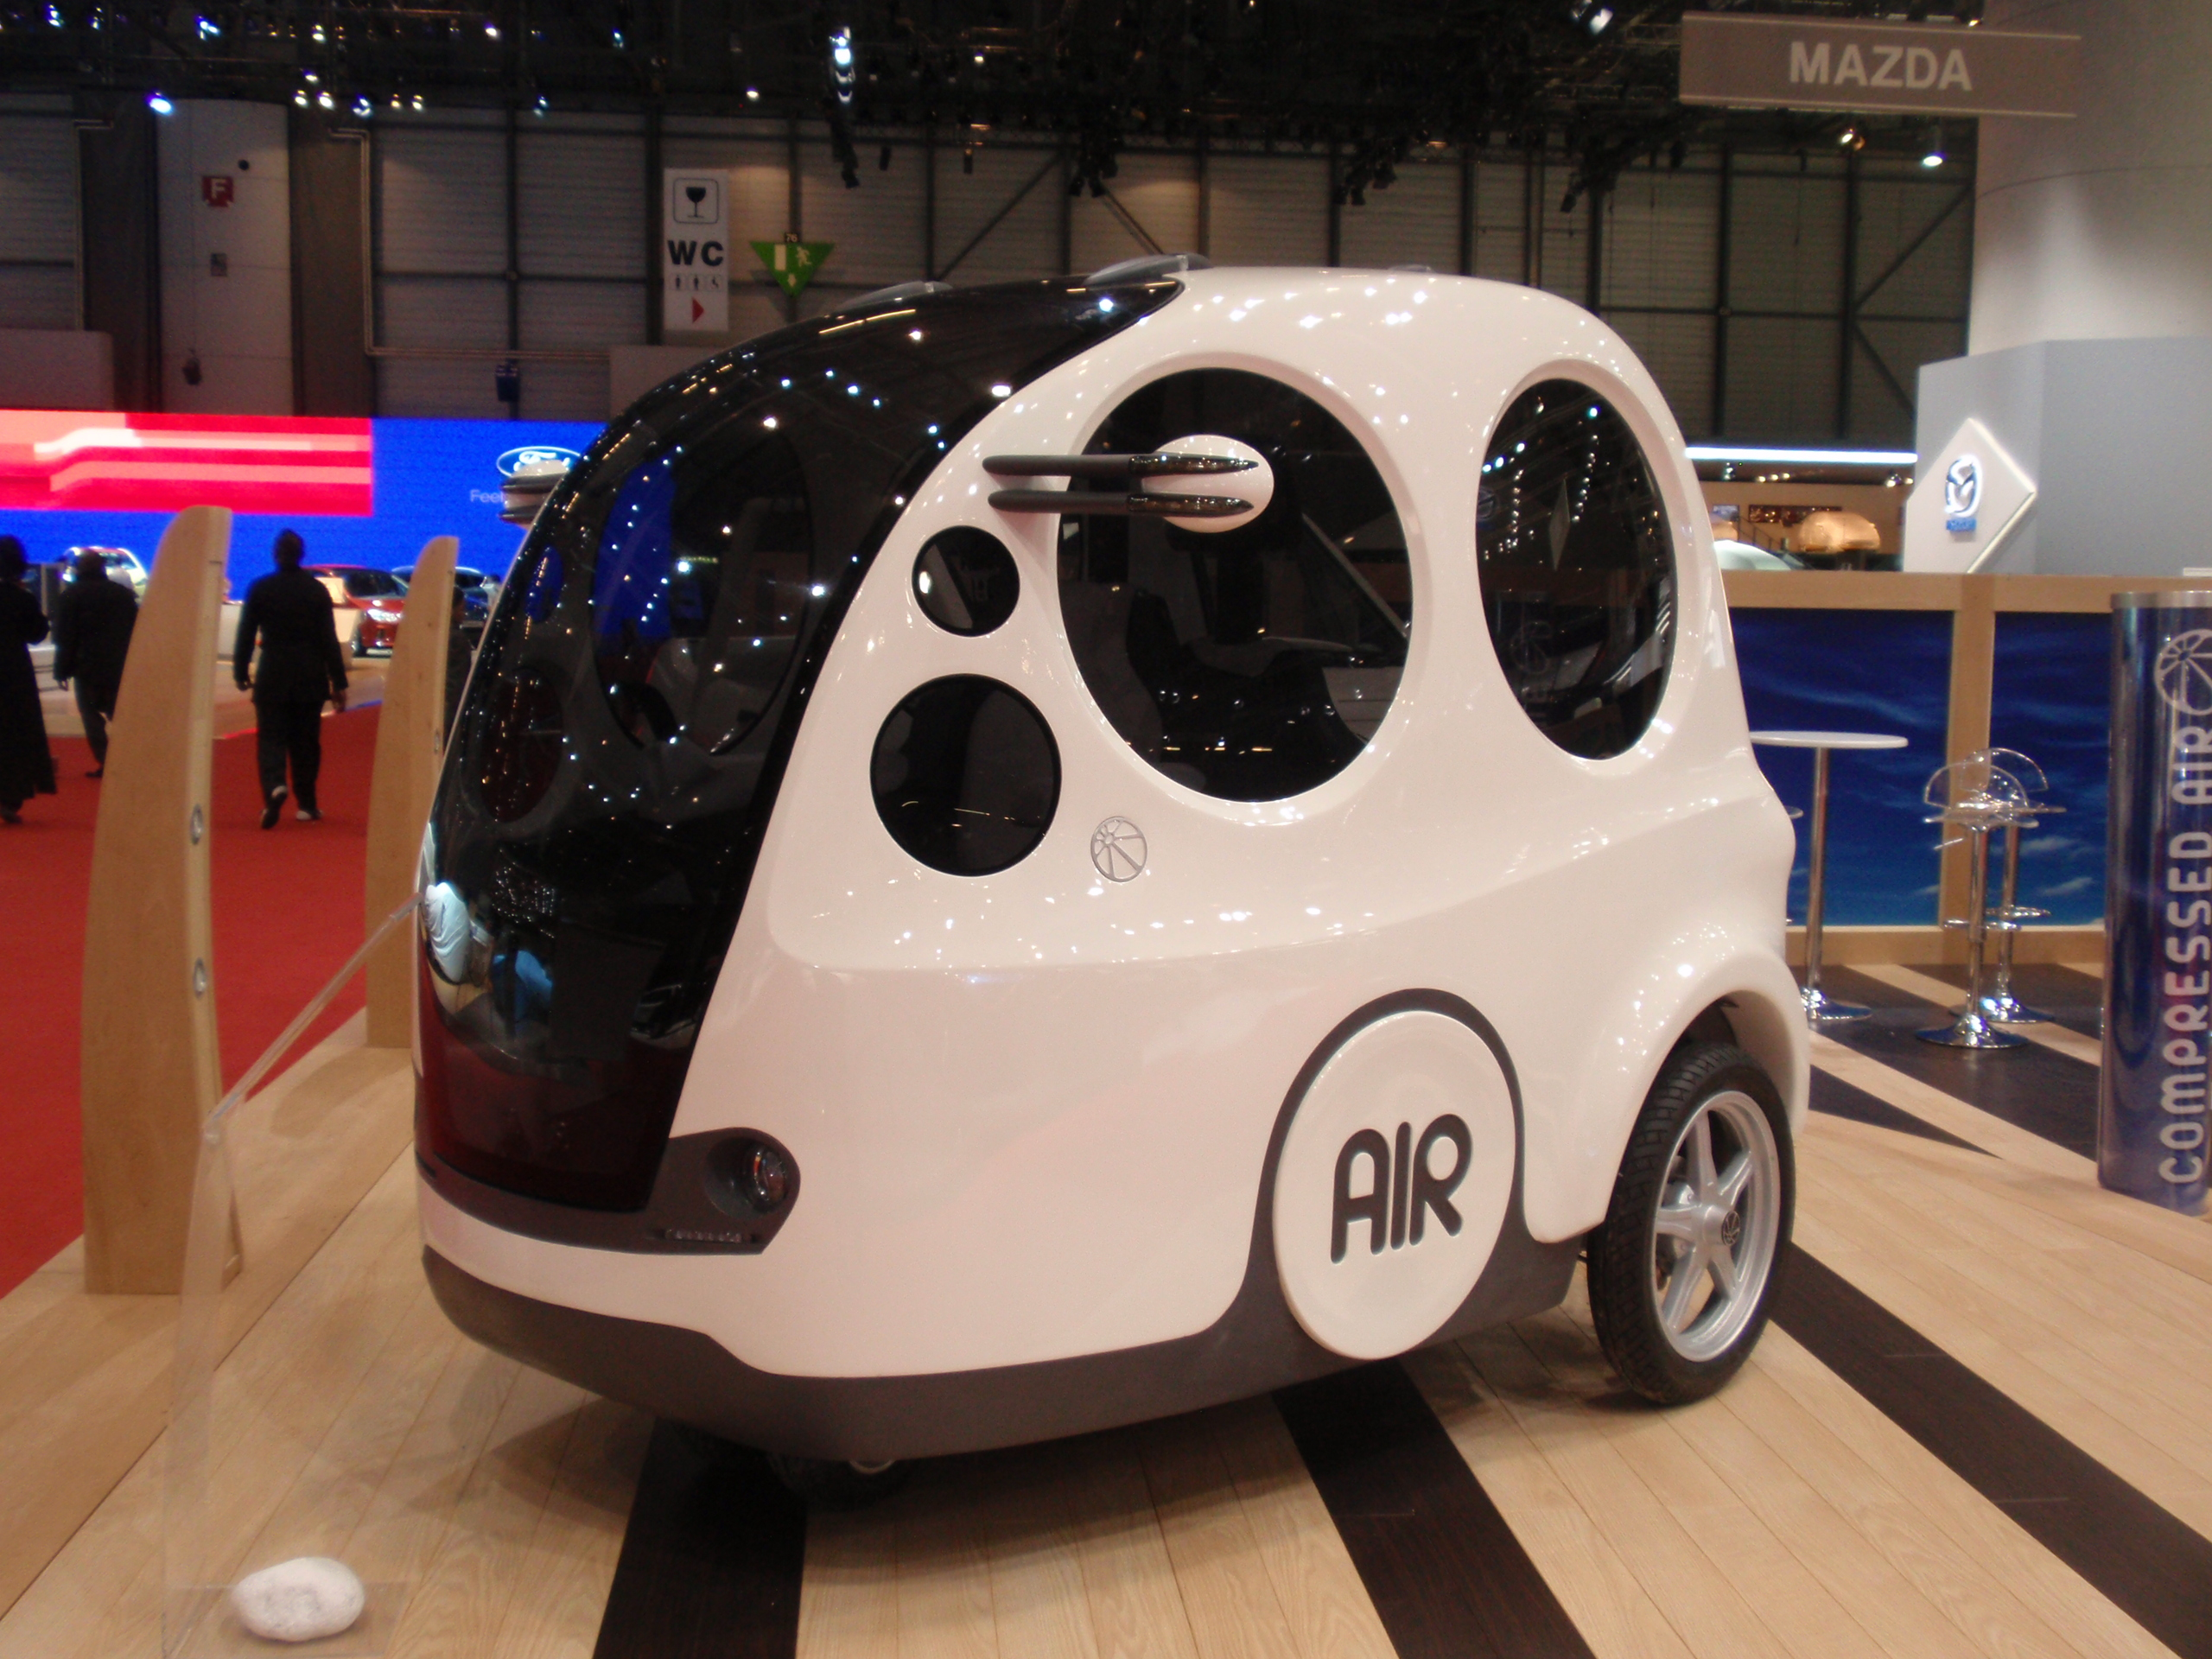 La voiture AirPod de MDI (Photo: El monty - Wikimedia)